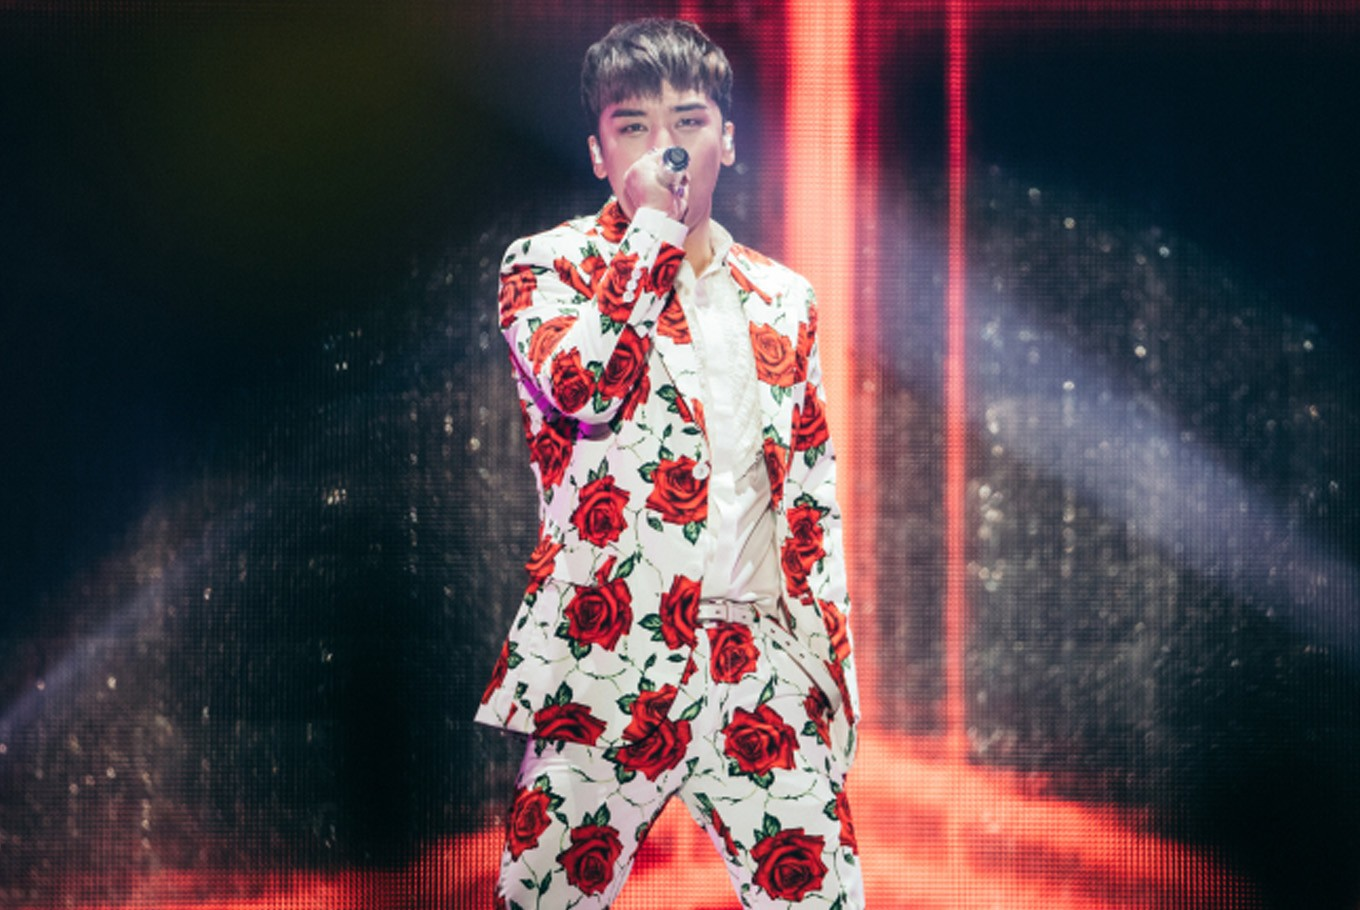 Police may question South Korean pop star Seungri as probe expands